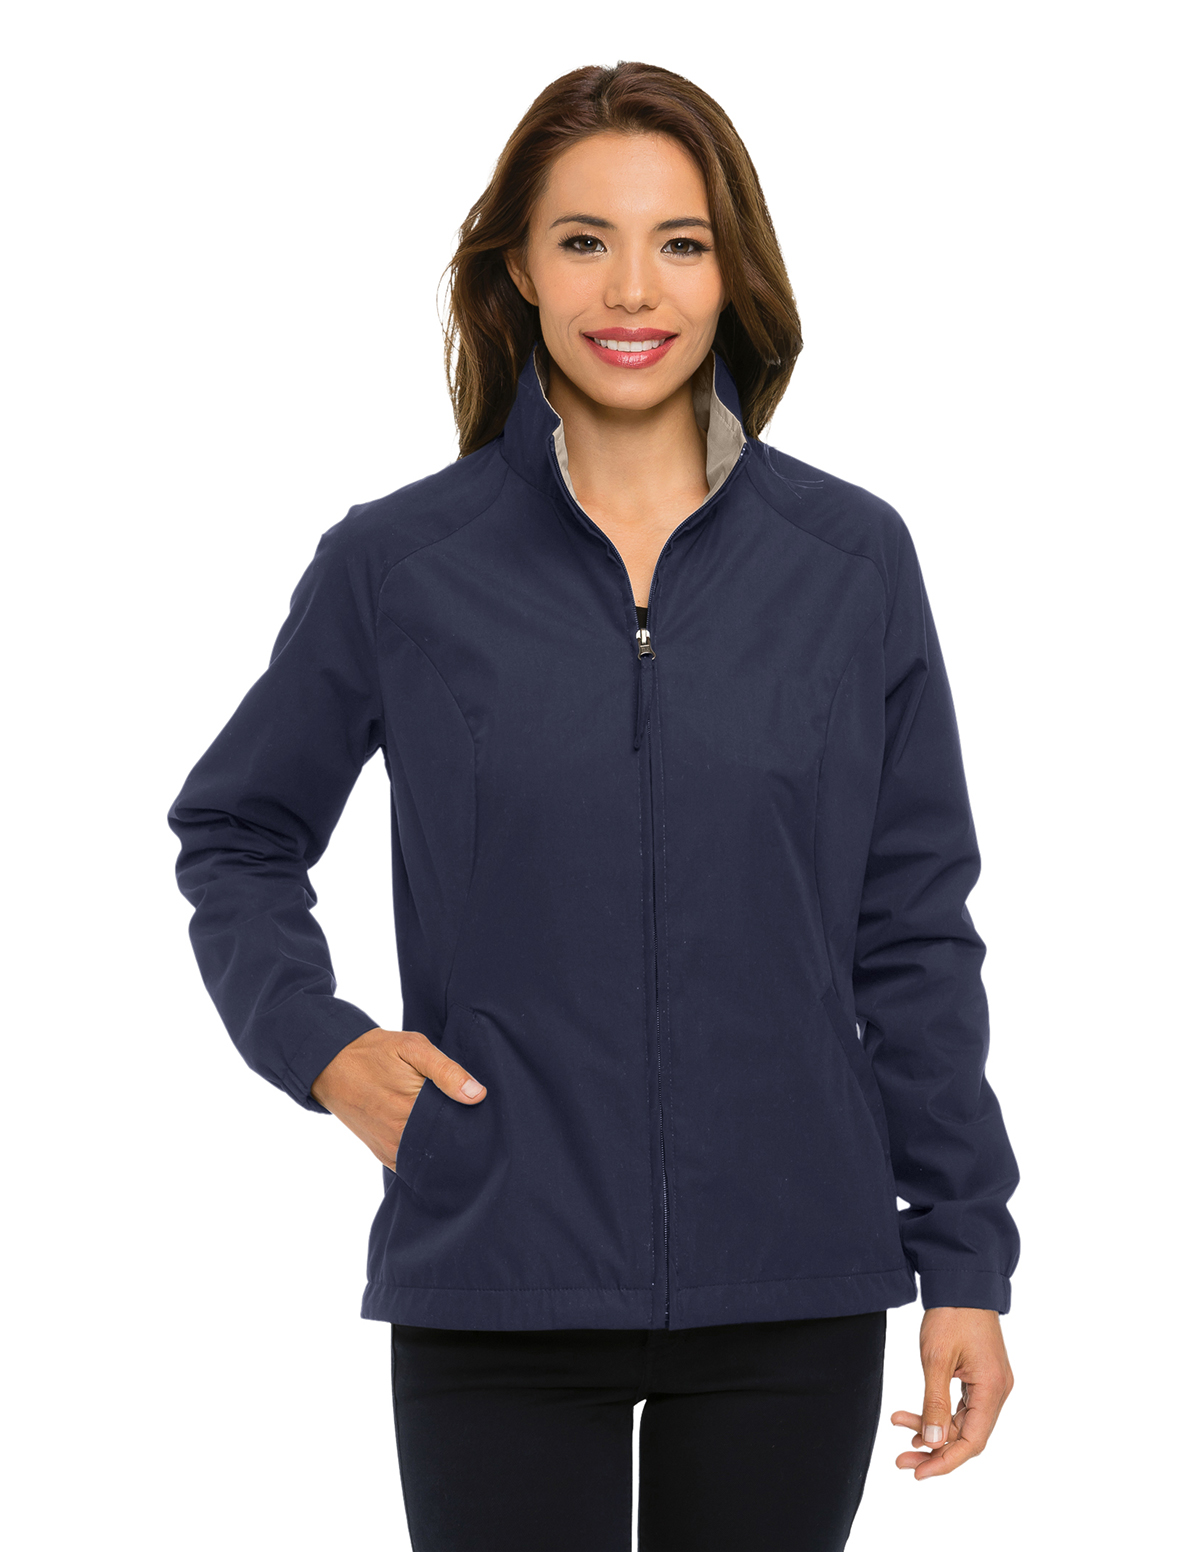 Tri-Mountain JL5308 - Radian Women's Lightweight Poplin Jacket